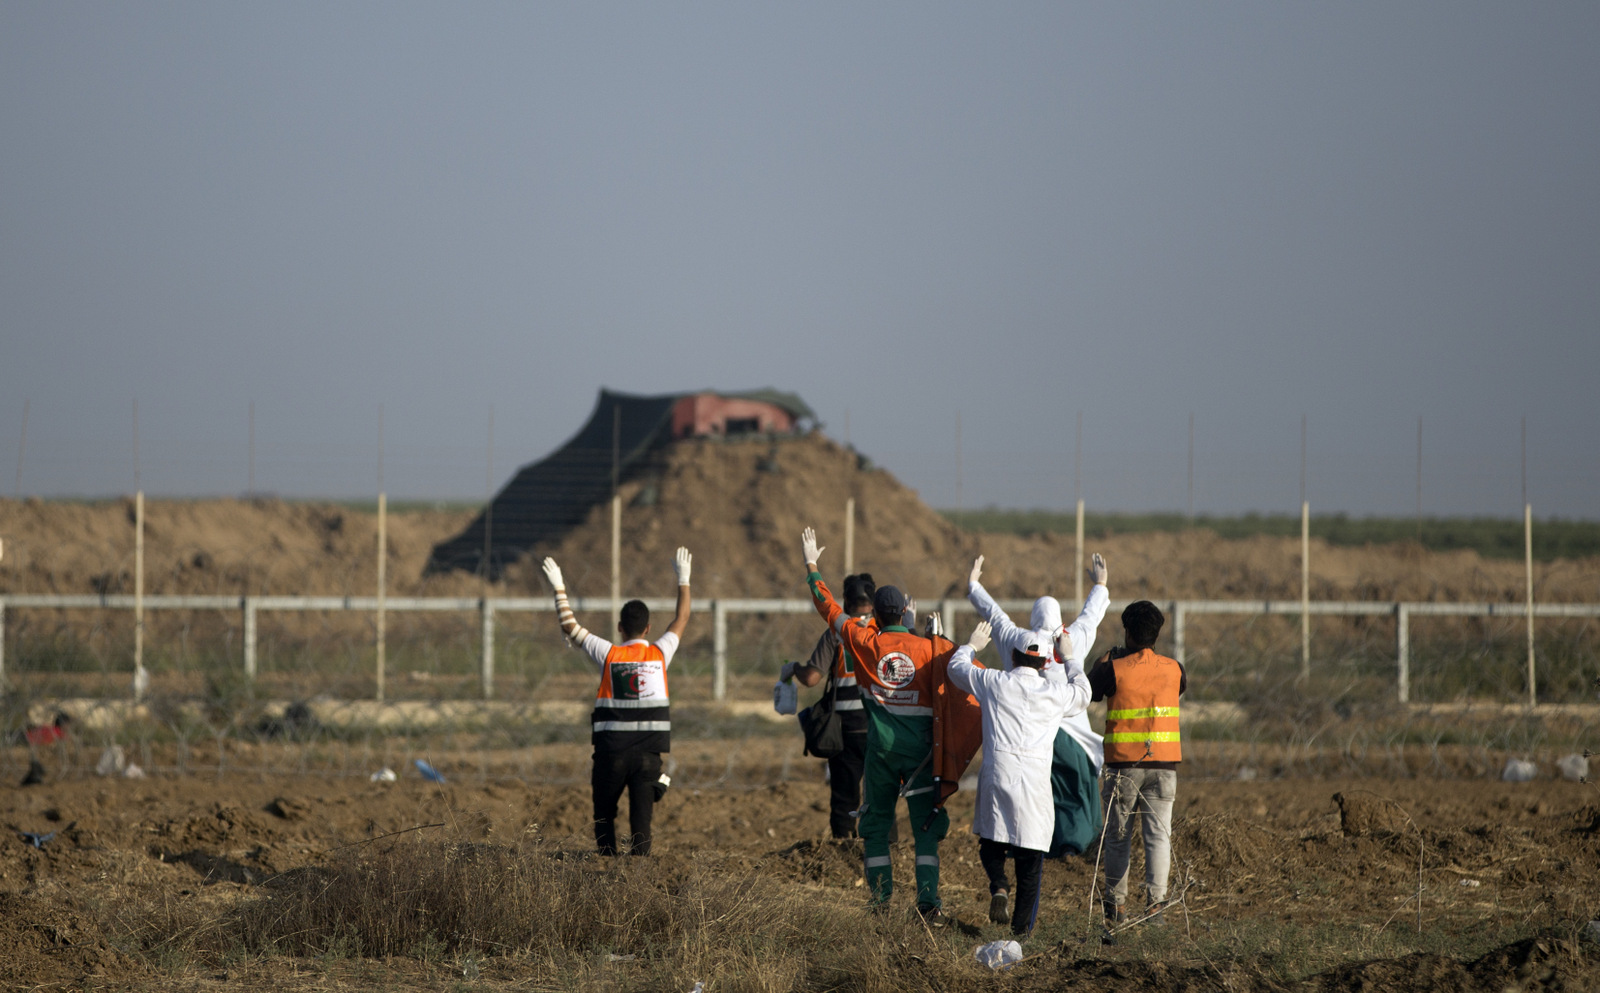 Palestinian medics raise their hands while walking towards an Israeli sniper nest near the border with Israel to evacuate injured protesters, May 15, 2018 (AP/Khalil Hamra)